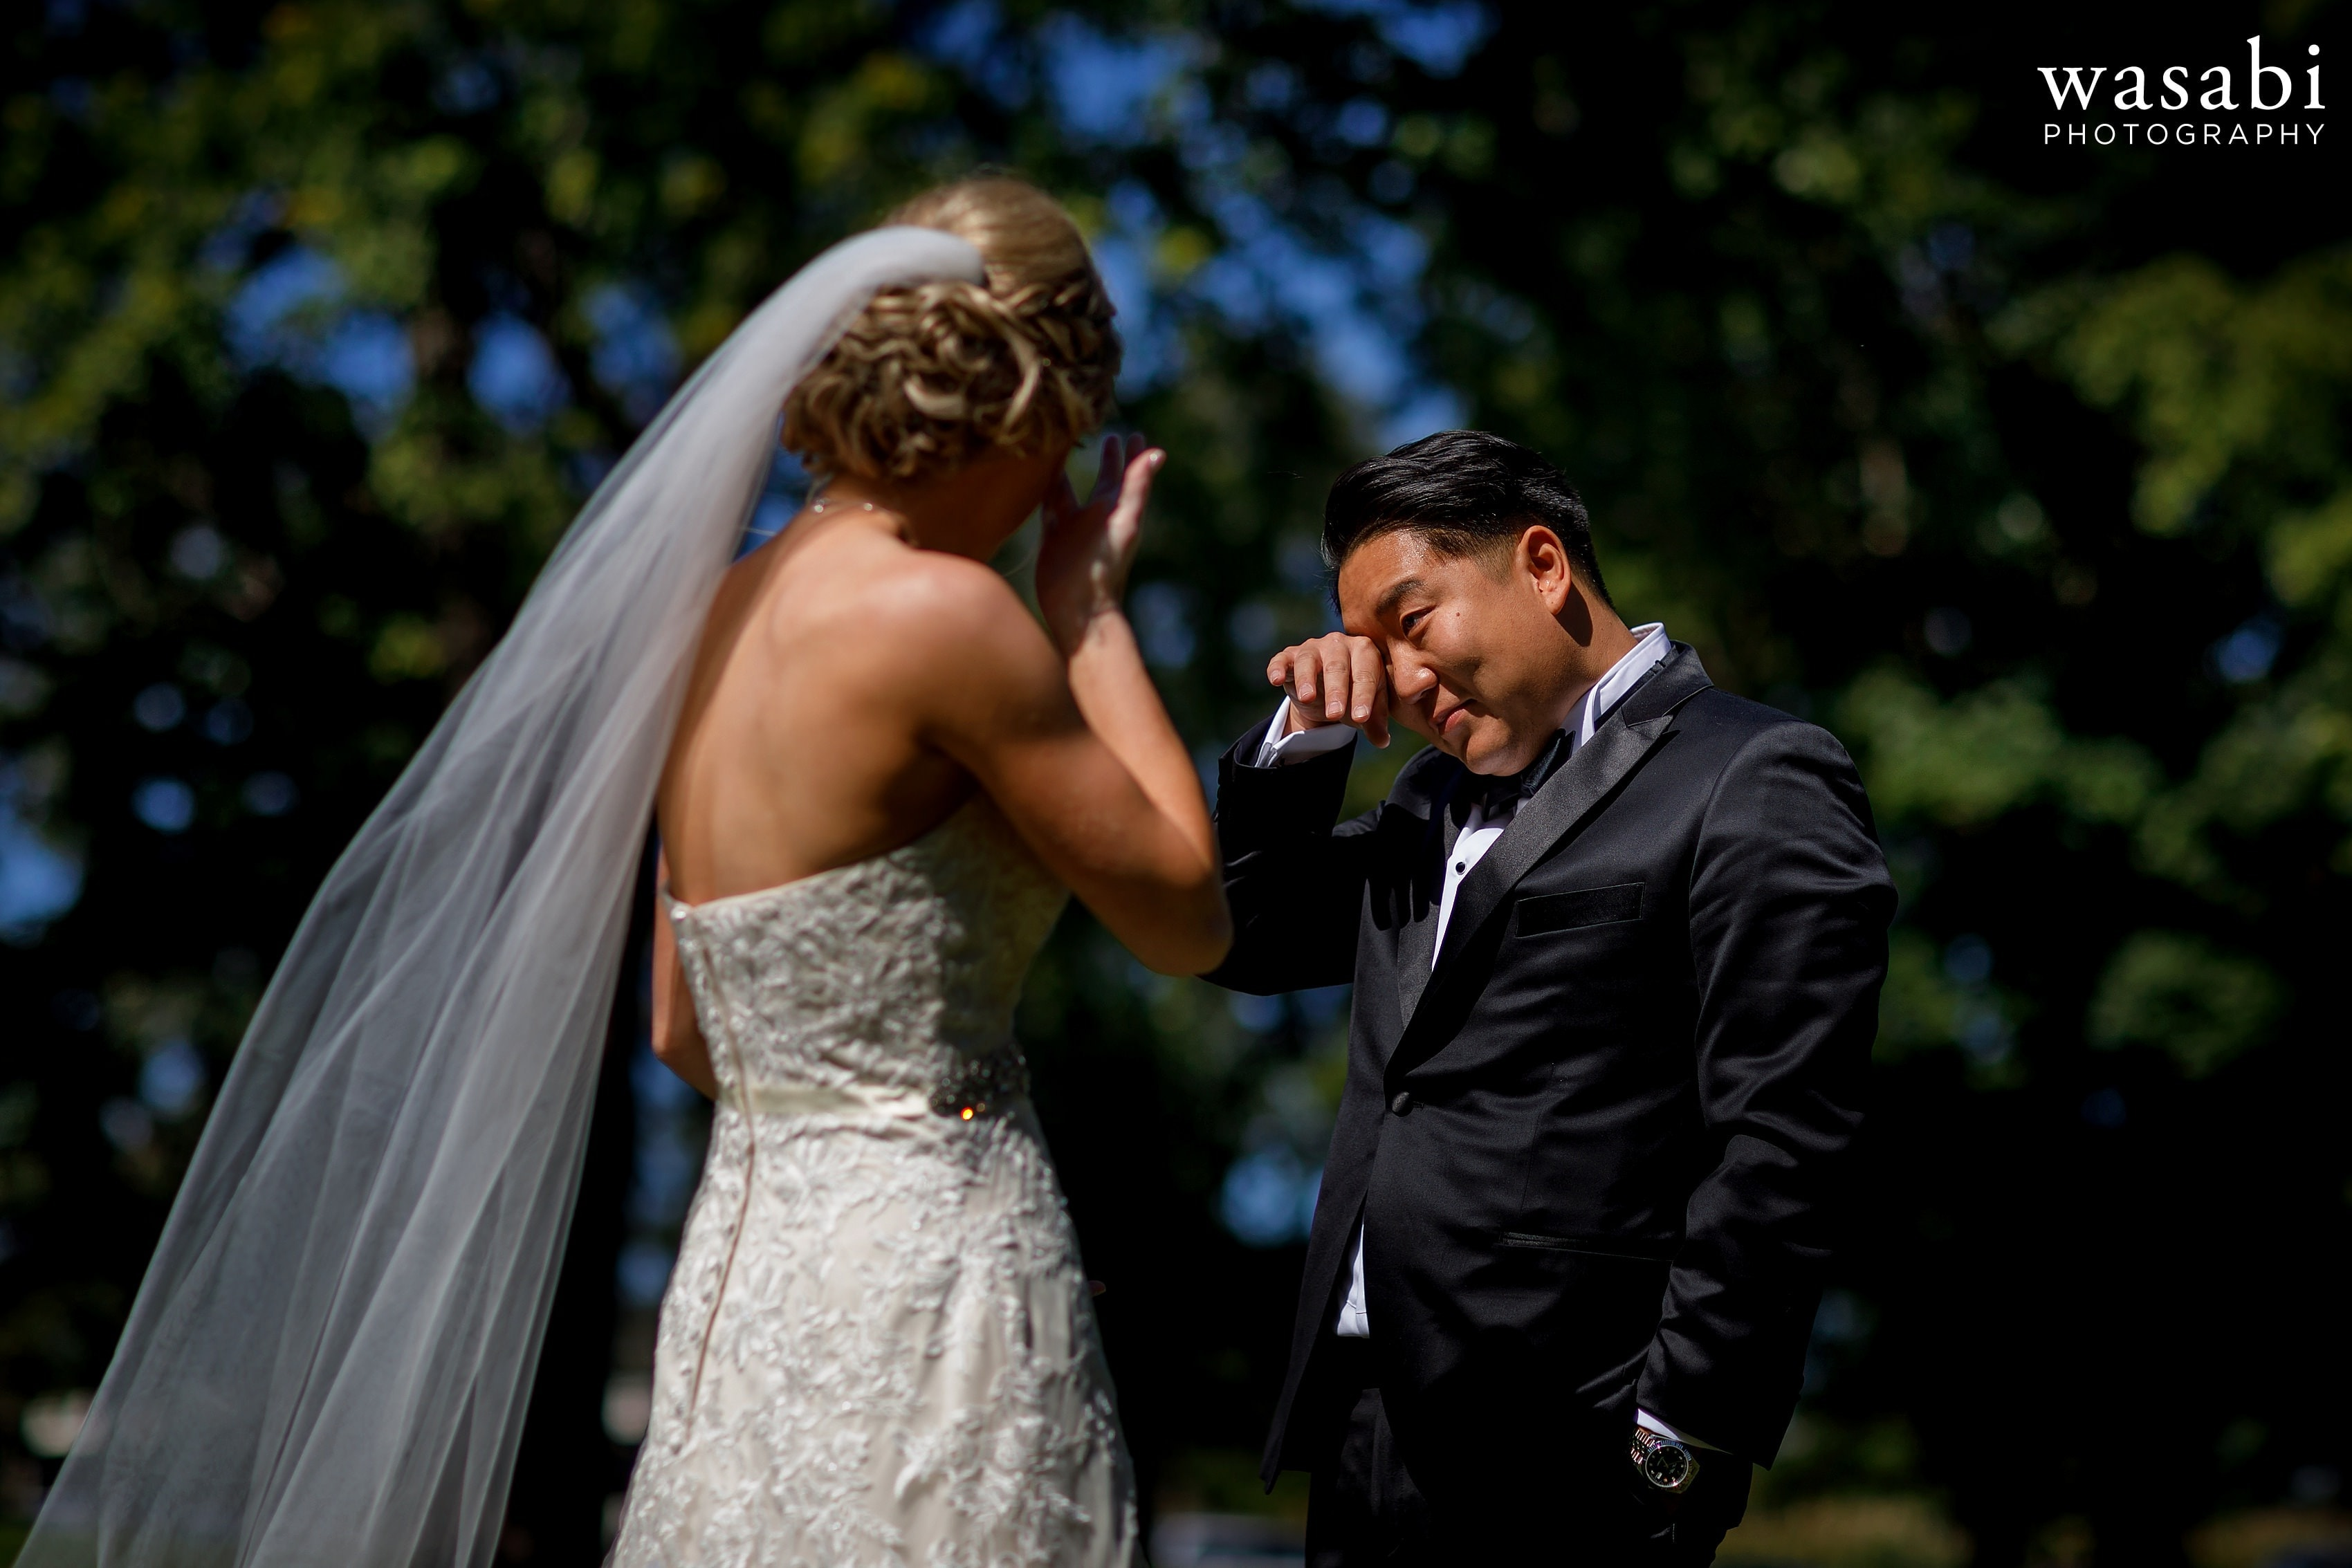 first look reaction of groom to seeing bride outside full sun